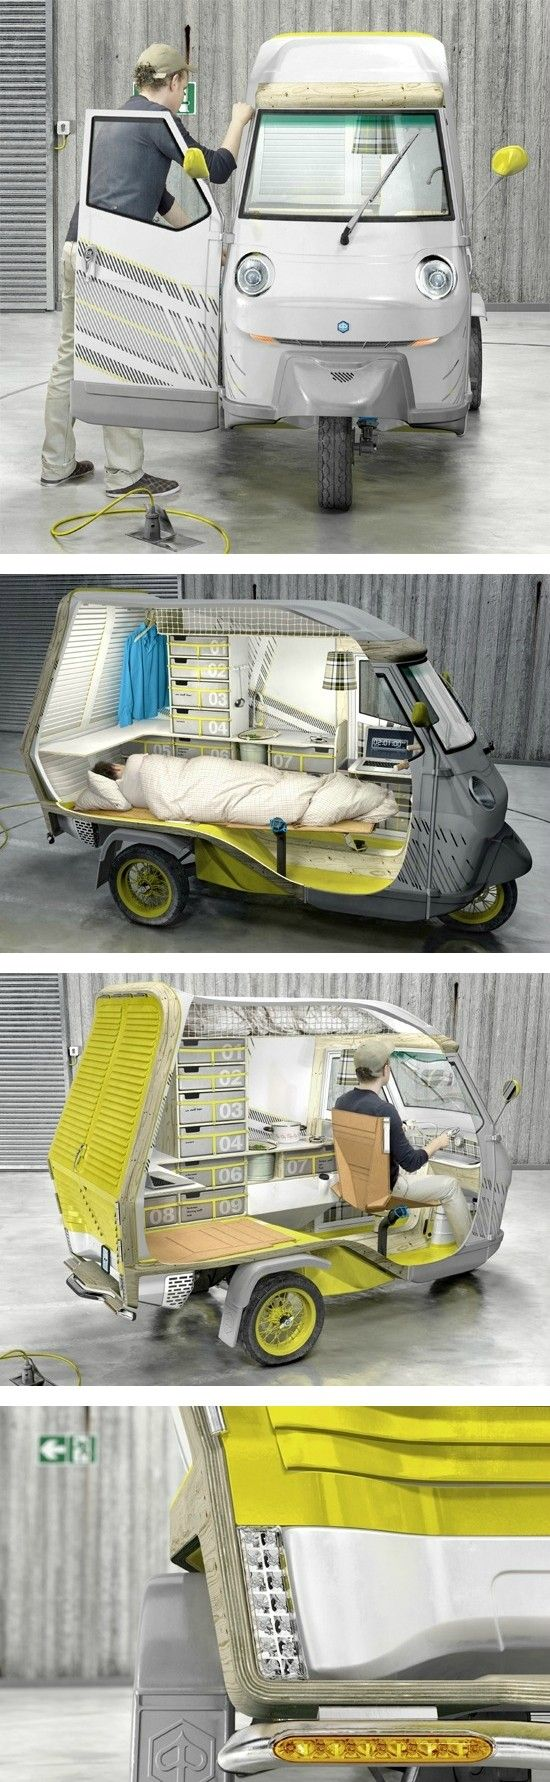 STRANGE NEW PRODUCTS - COOL 3 WHEEL SCOOTER - CAMPER FOR ONE PERSON OUTINGS! - 4 SHOT SEQUENCE!